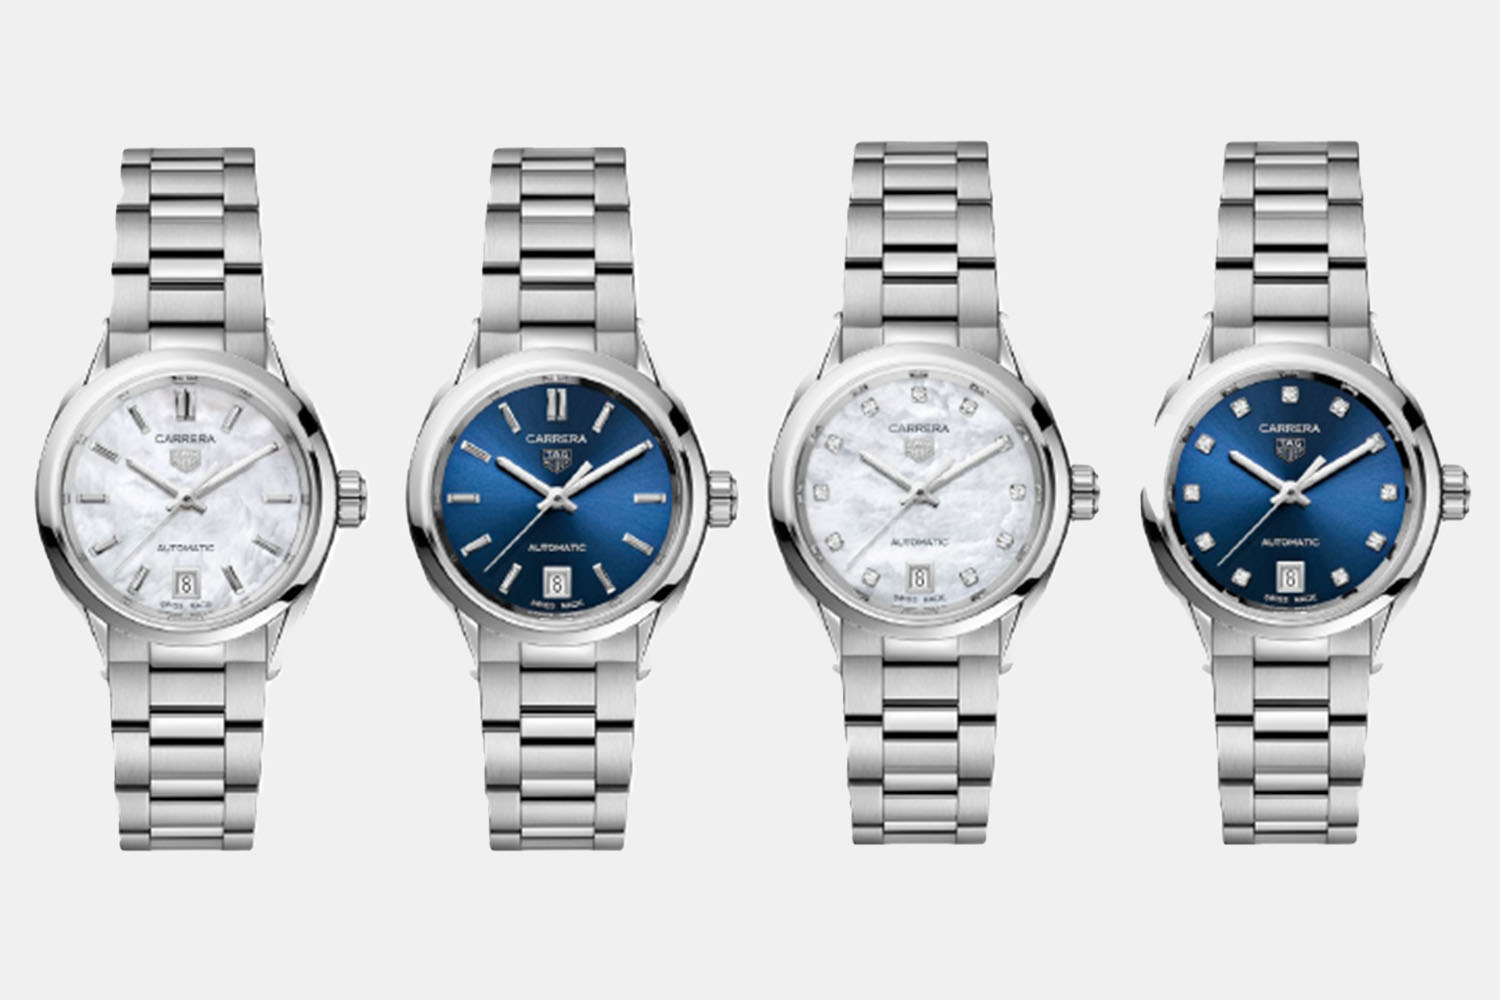 A collection of luxury watches